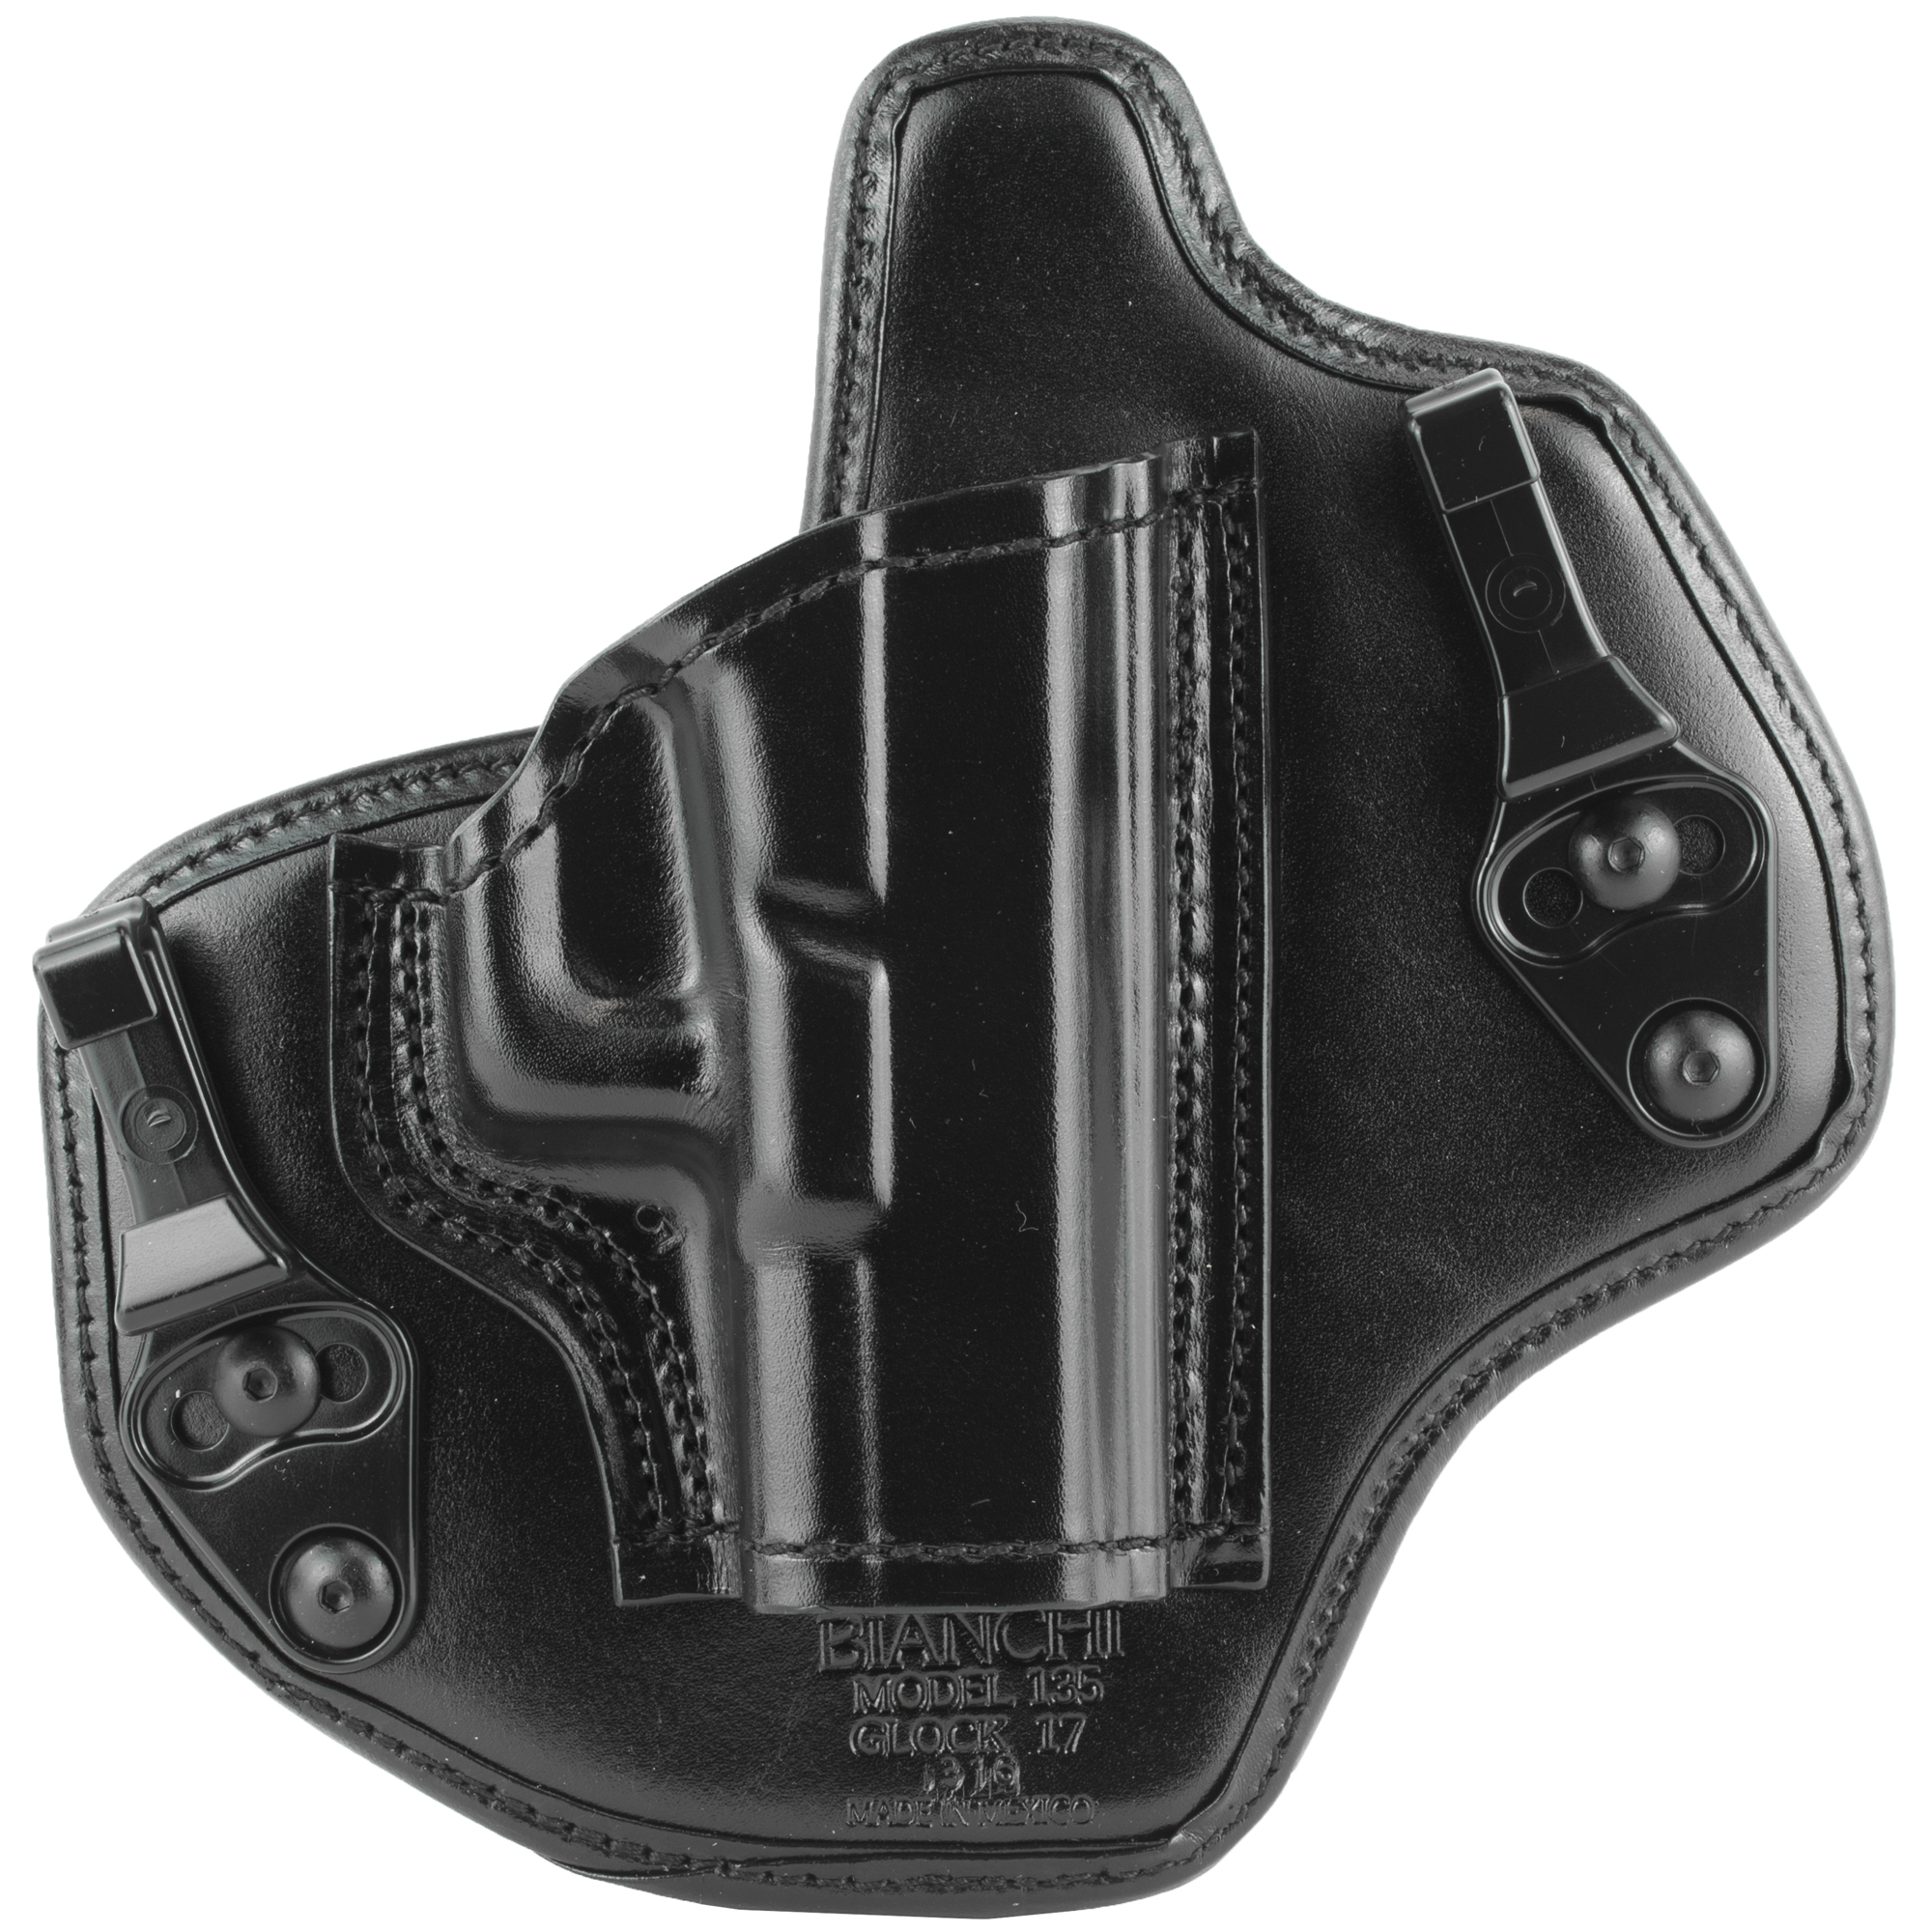 """The Bianchi Allusion Model 135 Suppression(TM) is a dedicated Inside the Waistband holster formed with premium high grade full grain leather"""" wrapped and laminated around a thermal-molded synthetic core. Matched with this holster is a body facing wrap-around formed with full-grain leather and outwardly lined with foam and anti-microbial mesh"""" making for comfortable longtime wear and odor-killing ability. This holster attaches to the belt with tuckable dual C-Clips"""" minimizing its footprint."""